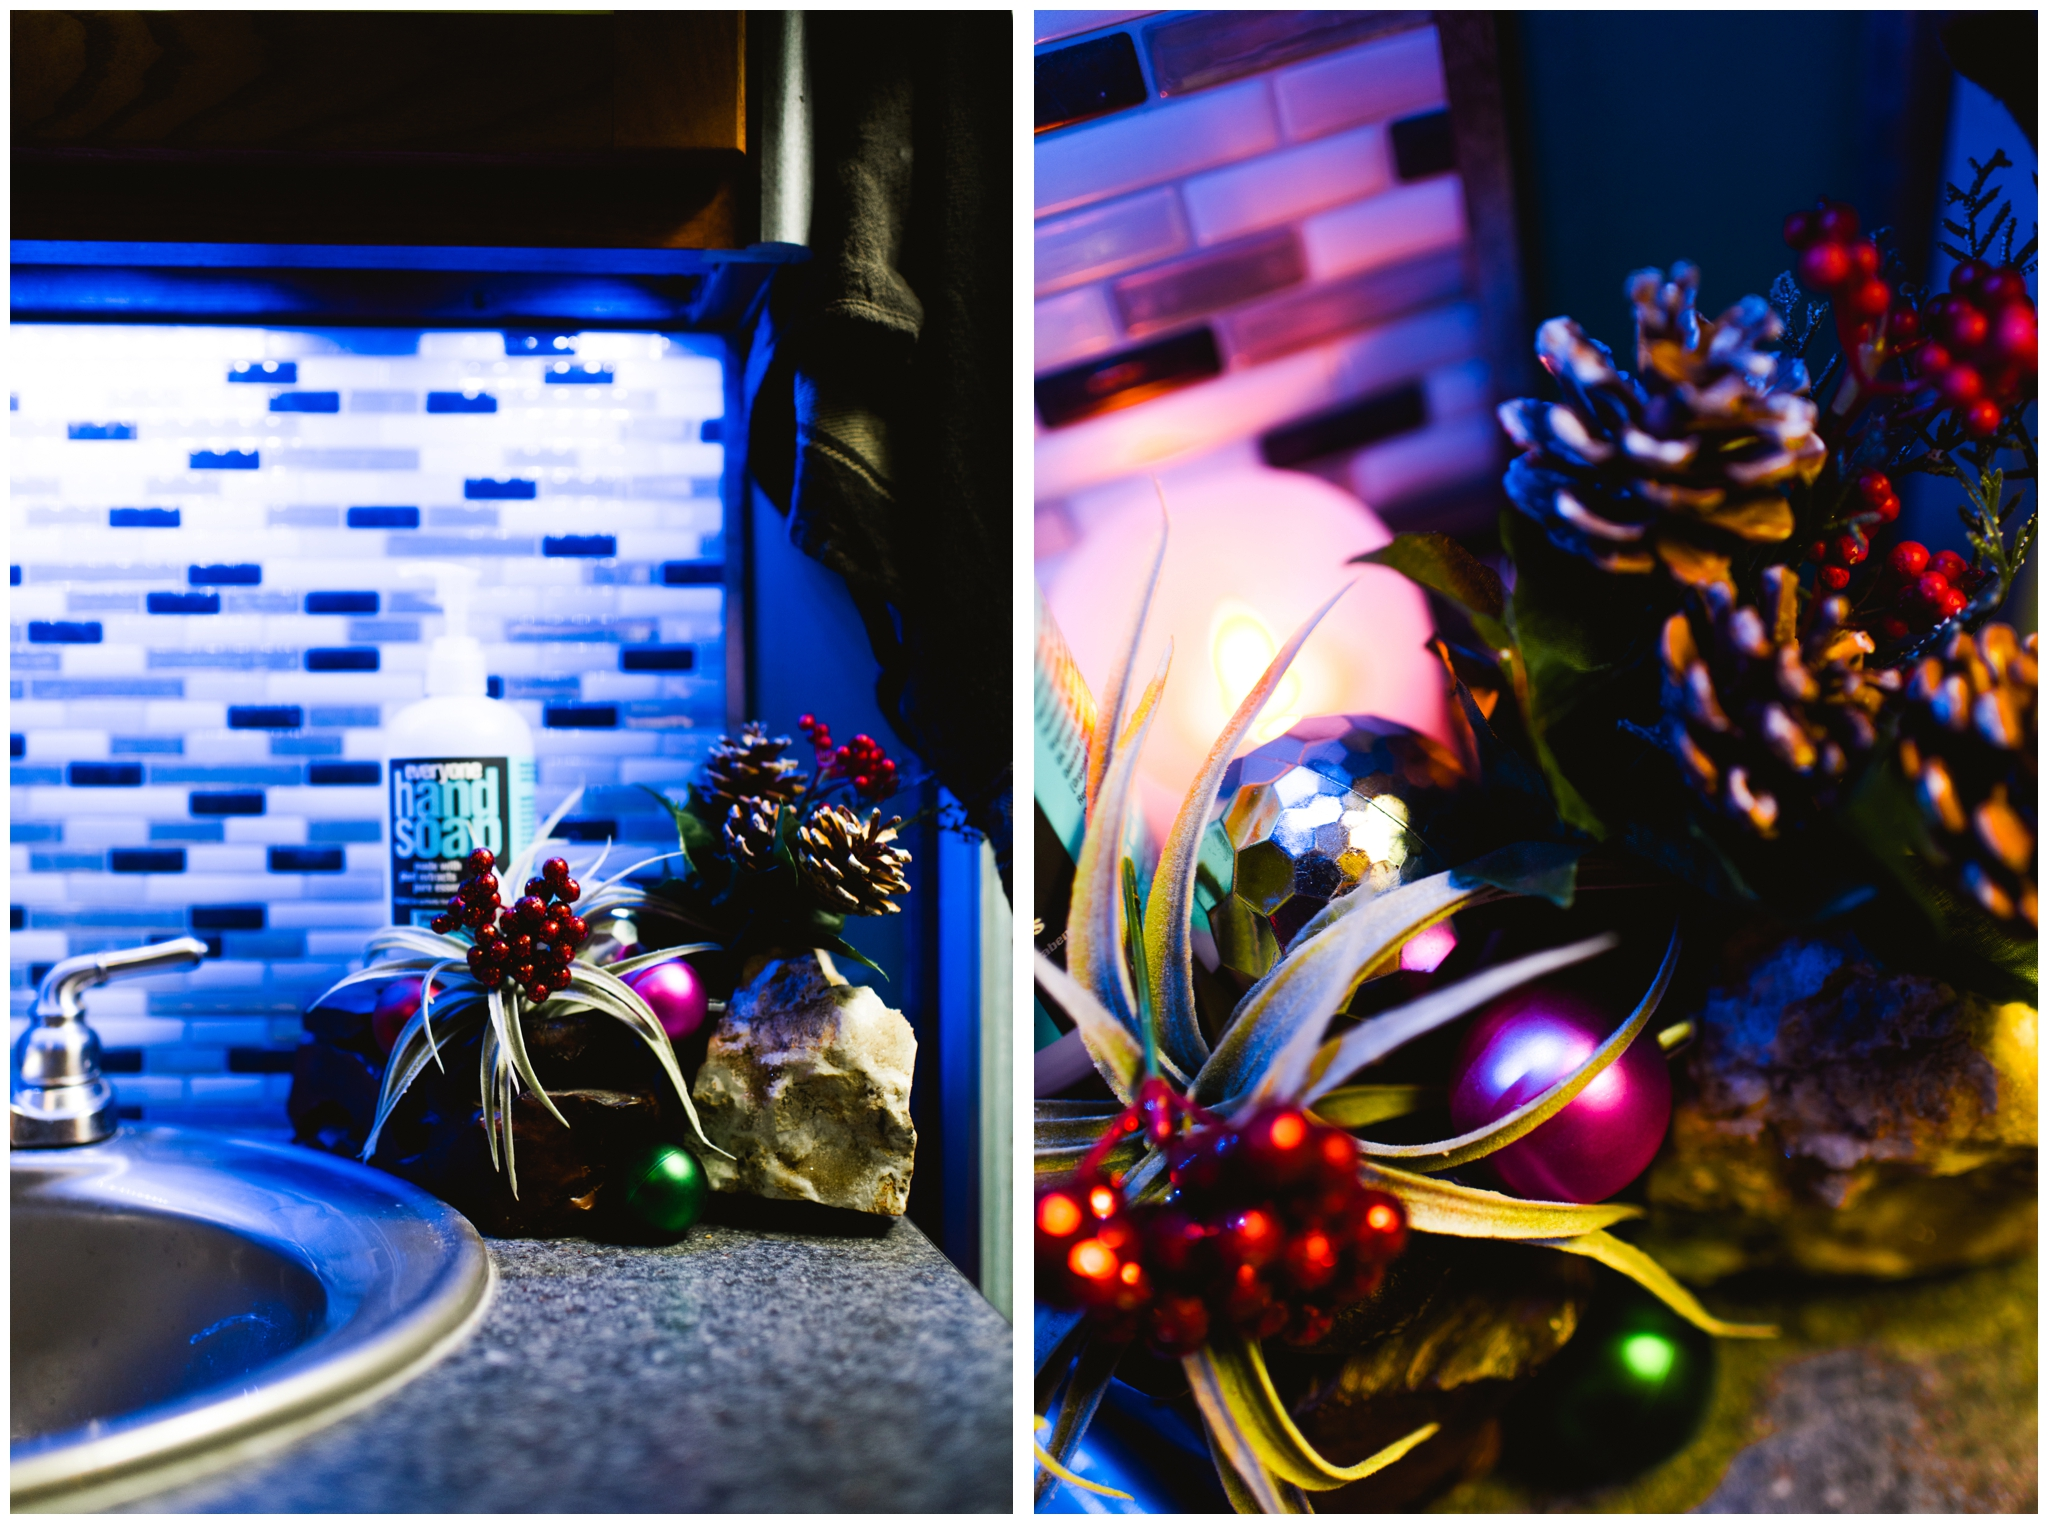 Kermit installed blue LED's permanently in our bathroom/bedroom and kitchen.